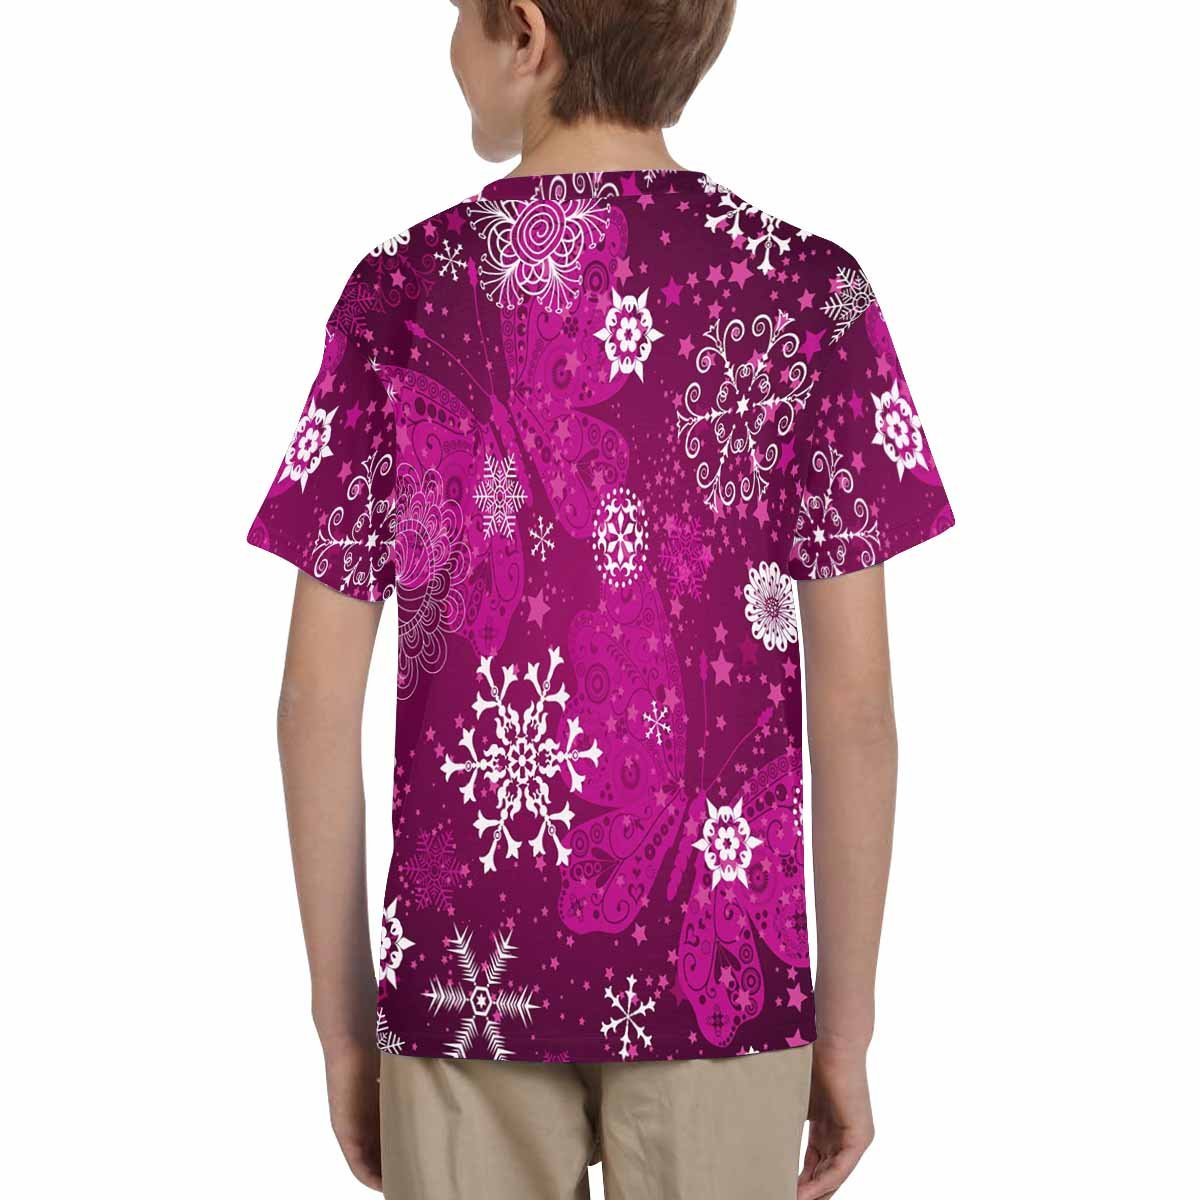 XS-XL INTERESTPRINT Youth T-Shirts Purple Gradient Pattern with Snowflakes and Vintage Pink Butterflies